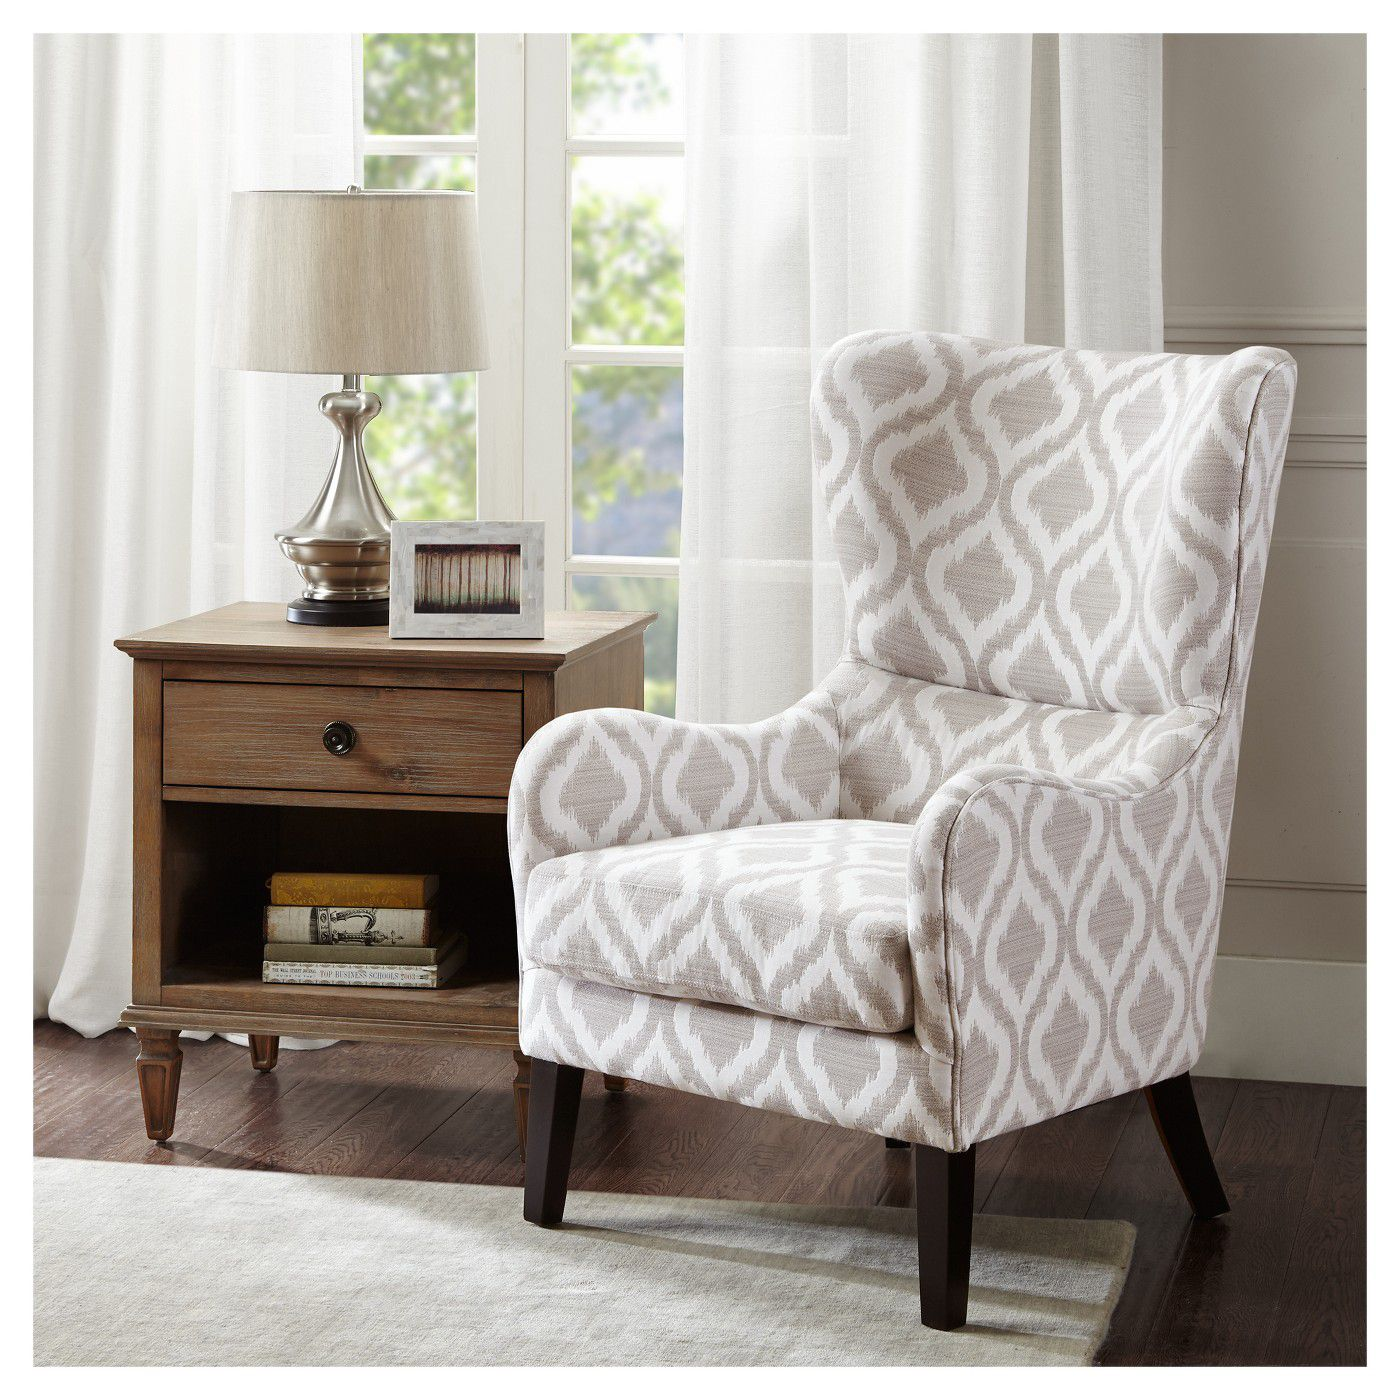 cozy chairs - swoop wingback arm chair